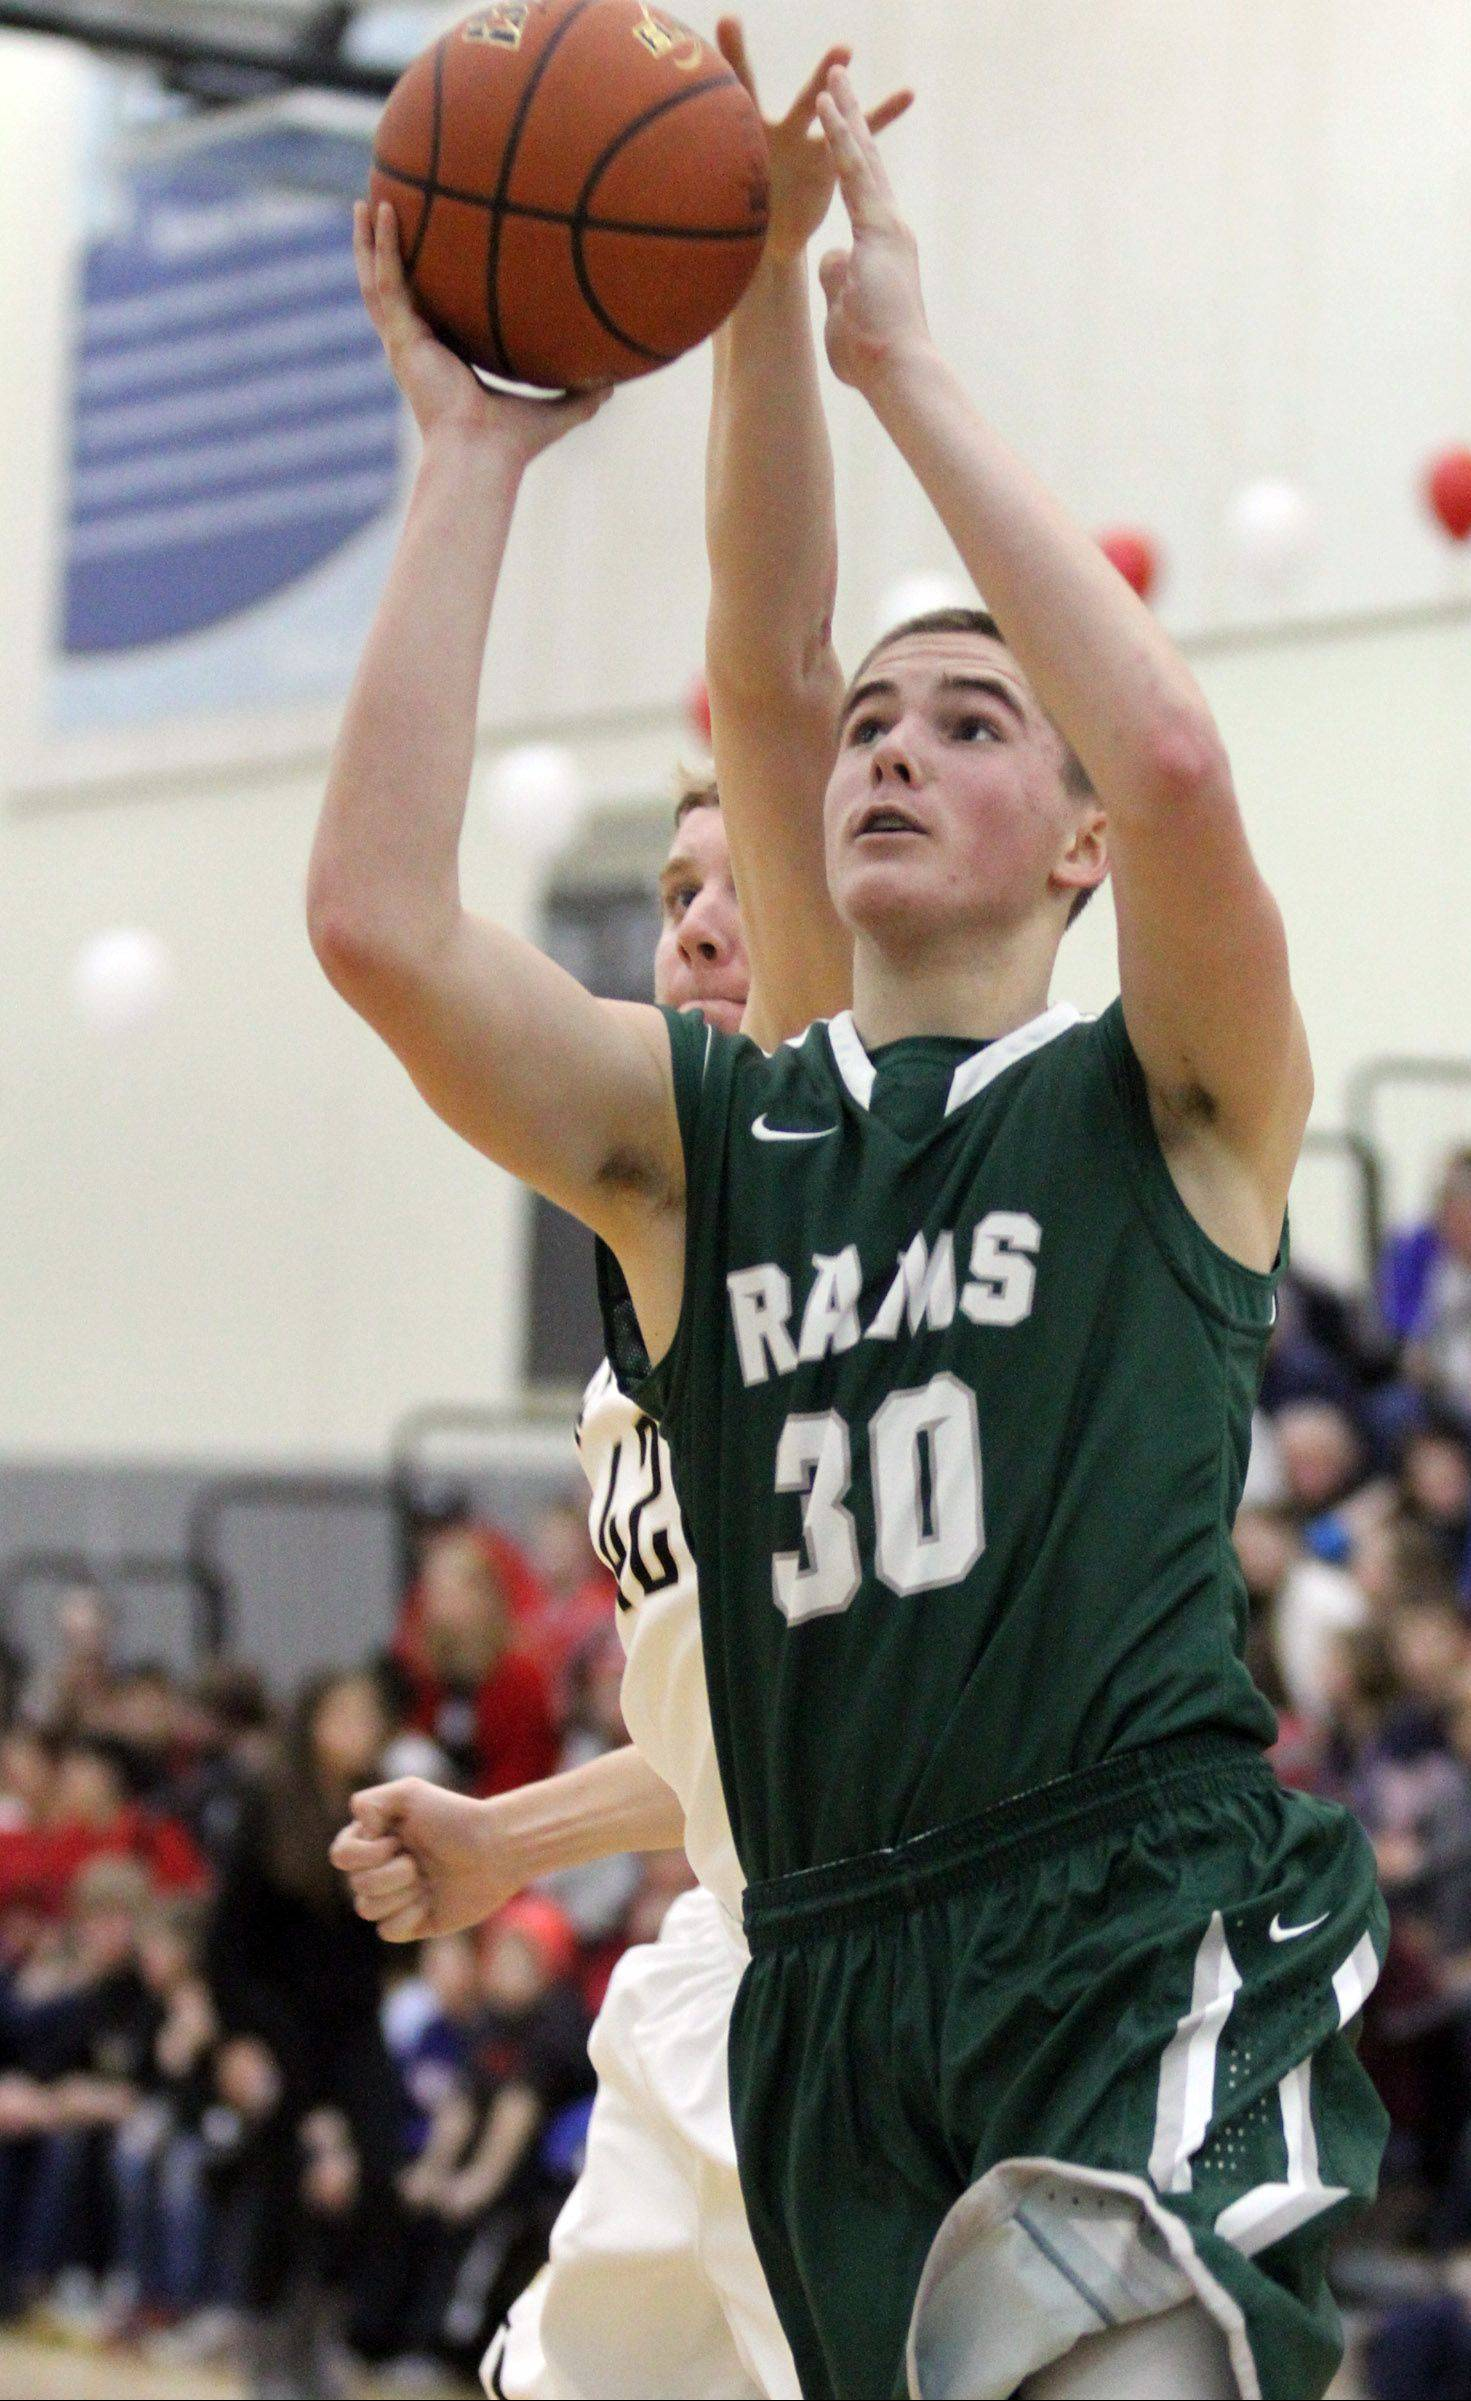 Grayslake Central forward Alex Lennartz breaks away for a shot against Grayslake North at Grayslake North on Friday.